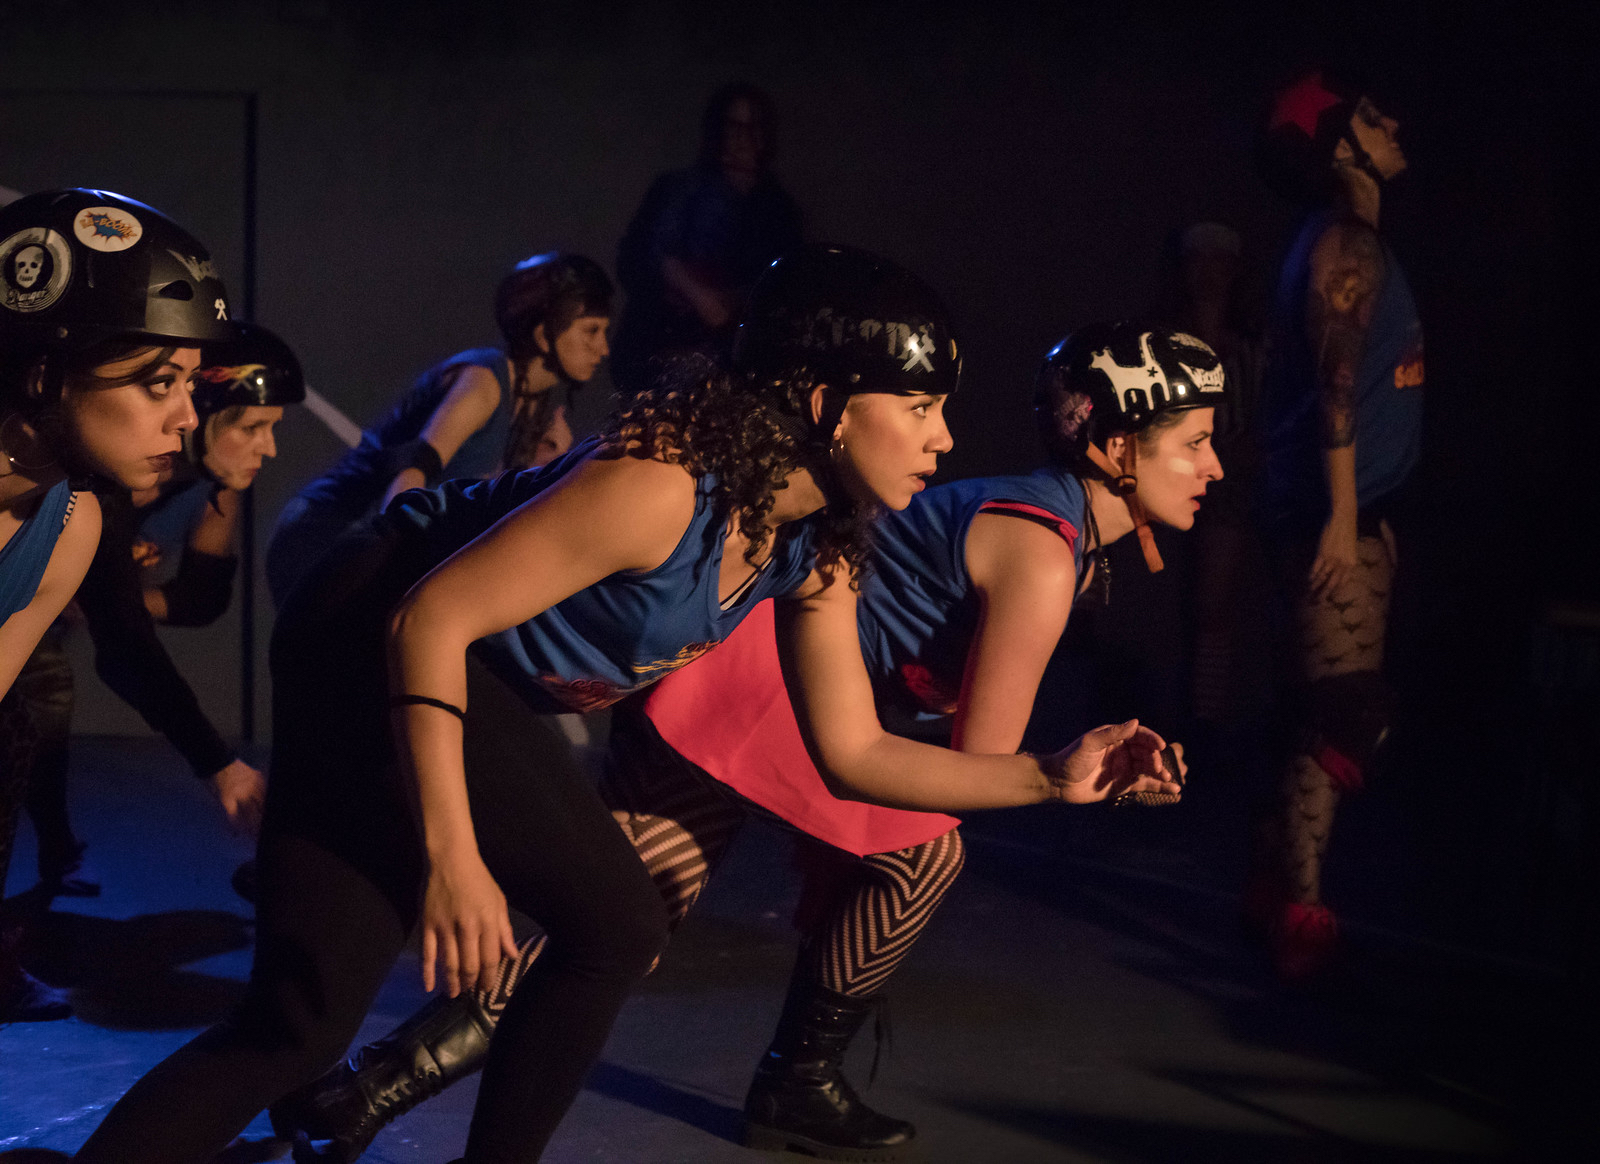 "(Foreground) - Crystal Diaz, Cassandra Blair, Alina Phelan (with the company) star in Theatre of NOTE's West Coast Premiere production of ""FOR THE LOVE OF (or the roller derby play) by Gina Femia, directed and choreographed by Rhonda Kohl and now playing at Theatre of NOTE in Hollywood. Photo by Darrett Sanders"